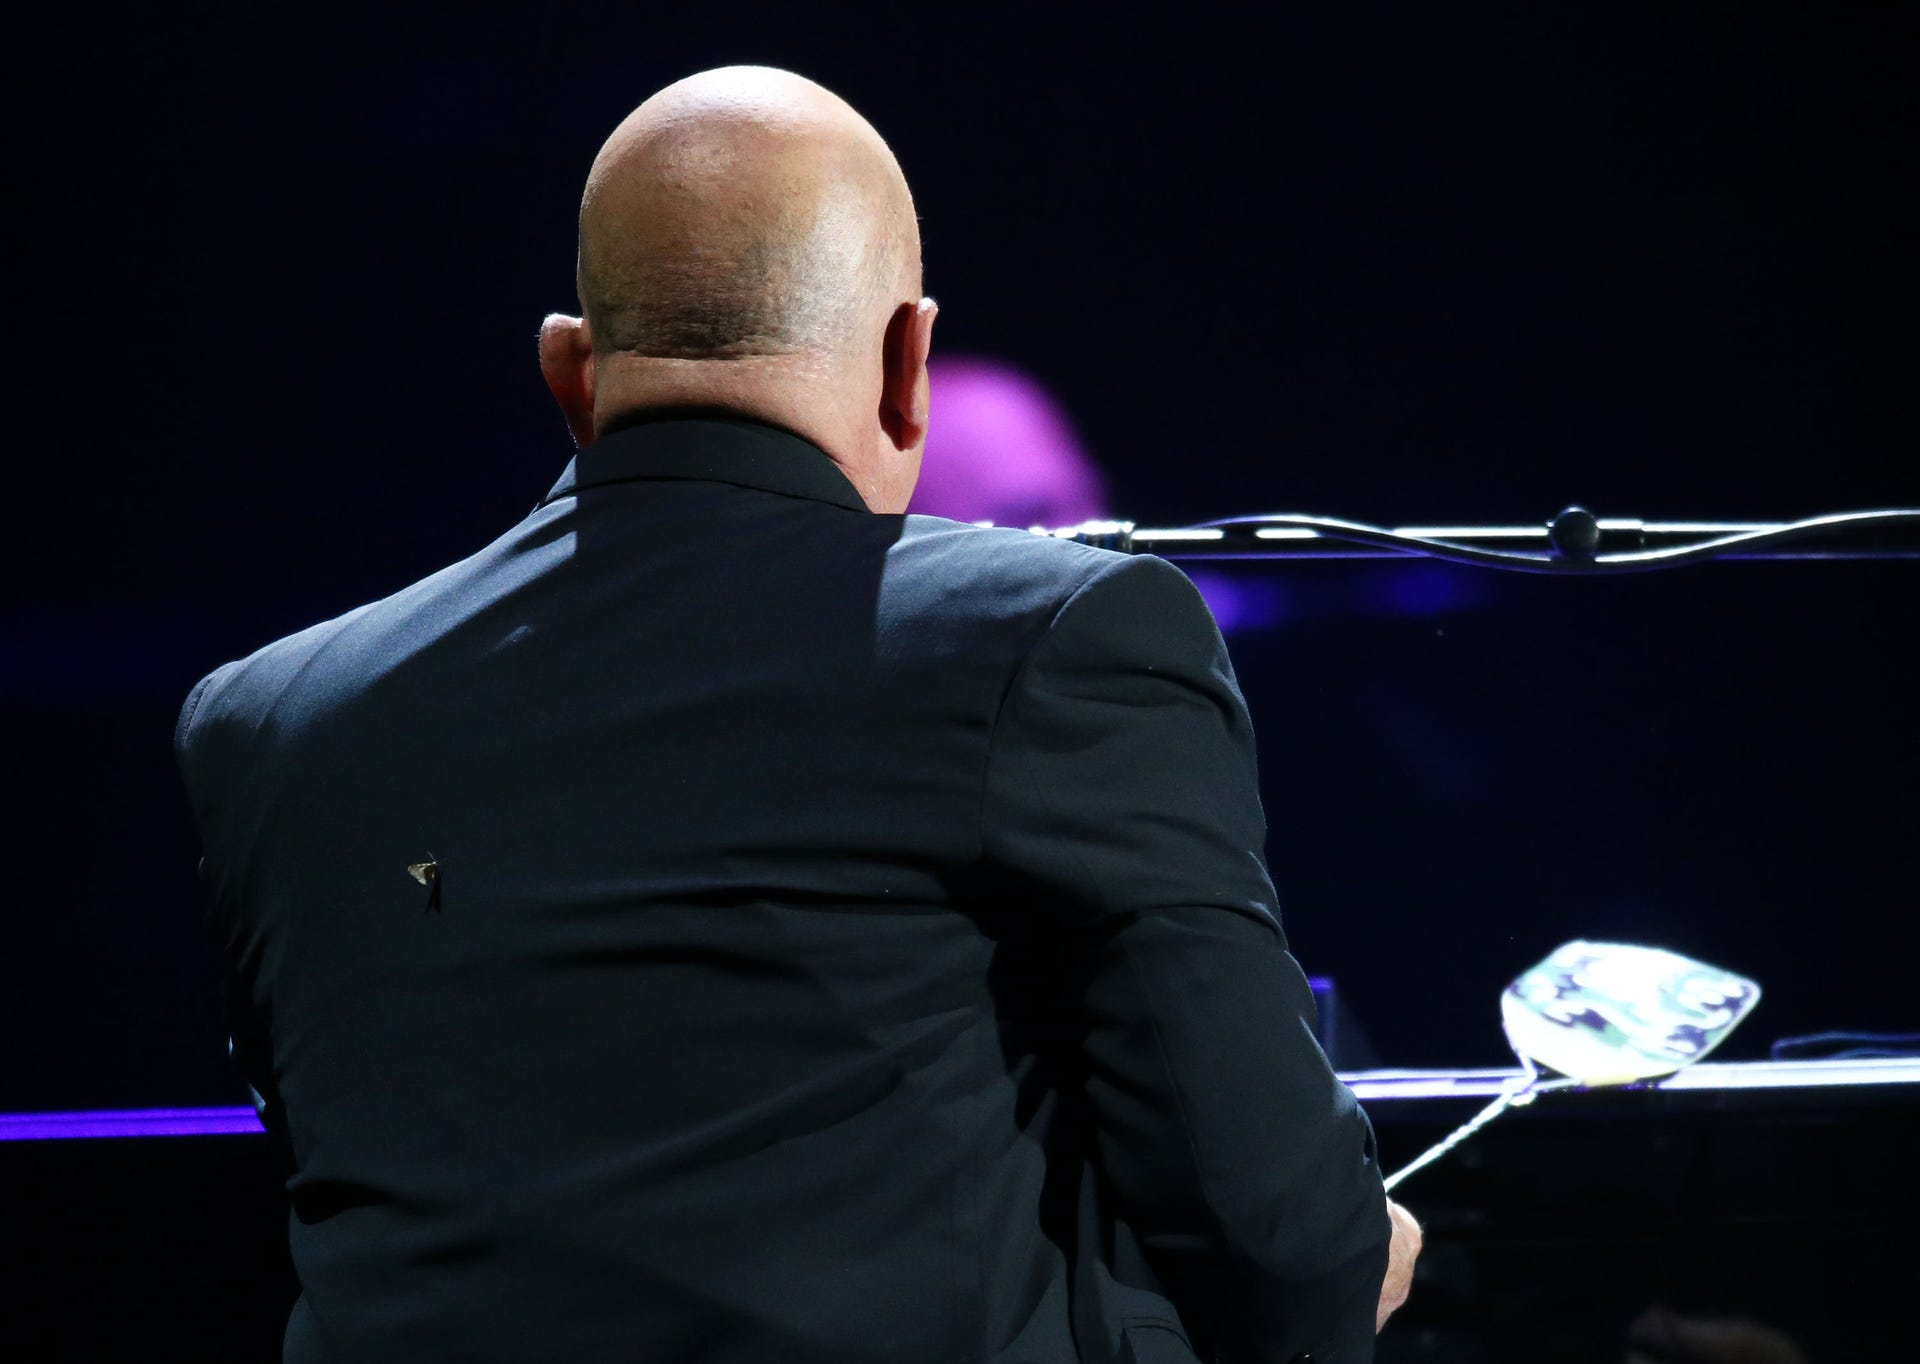 Musician Billy Joel performs while swatting little white moths at Chase Field on March 9, 2019 in Phoenix.